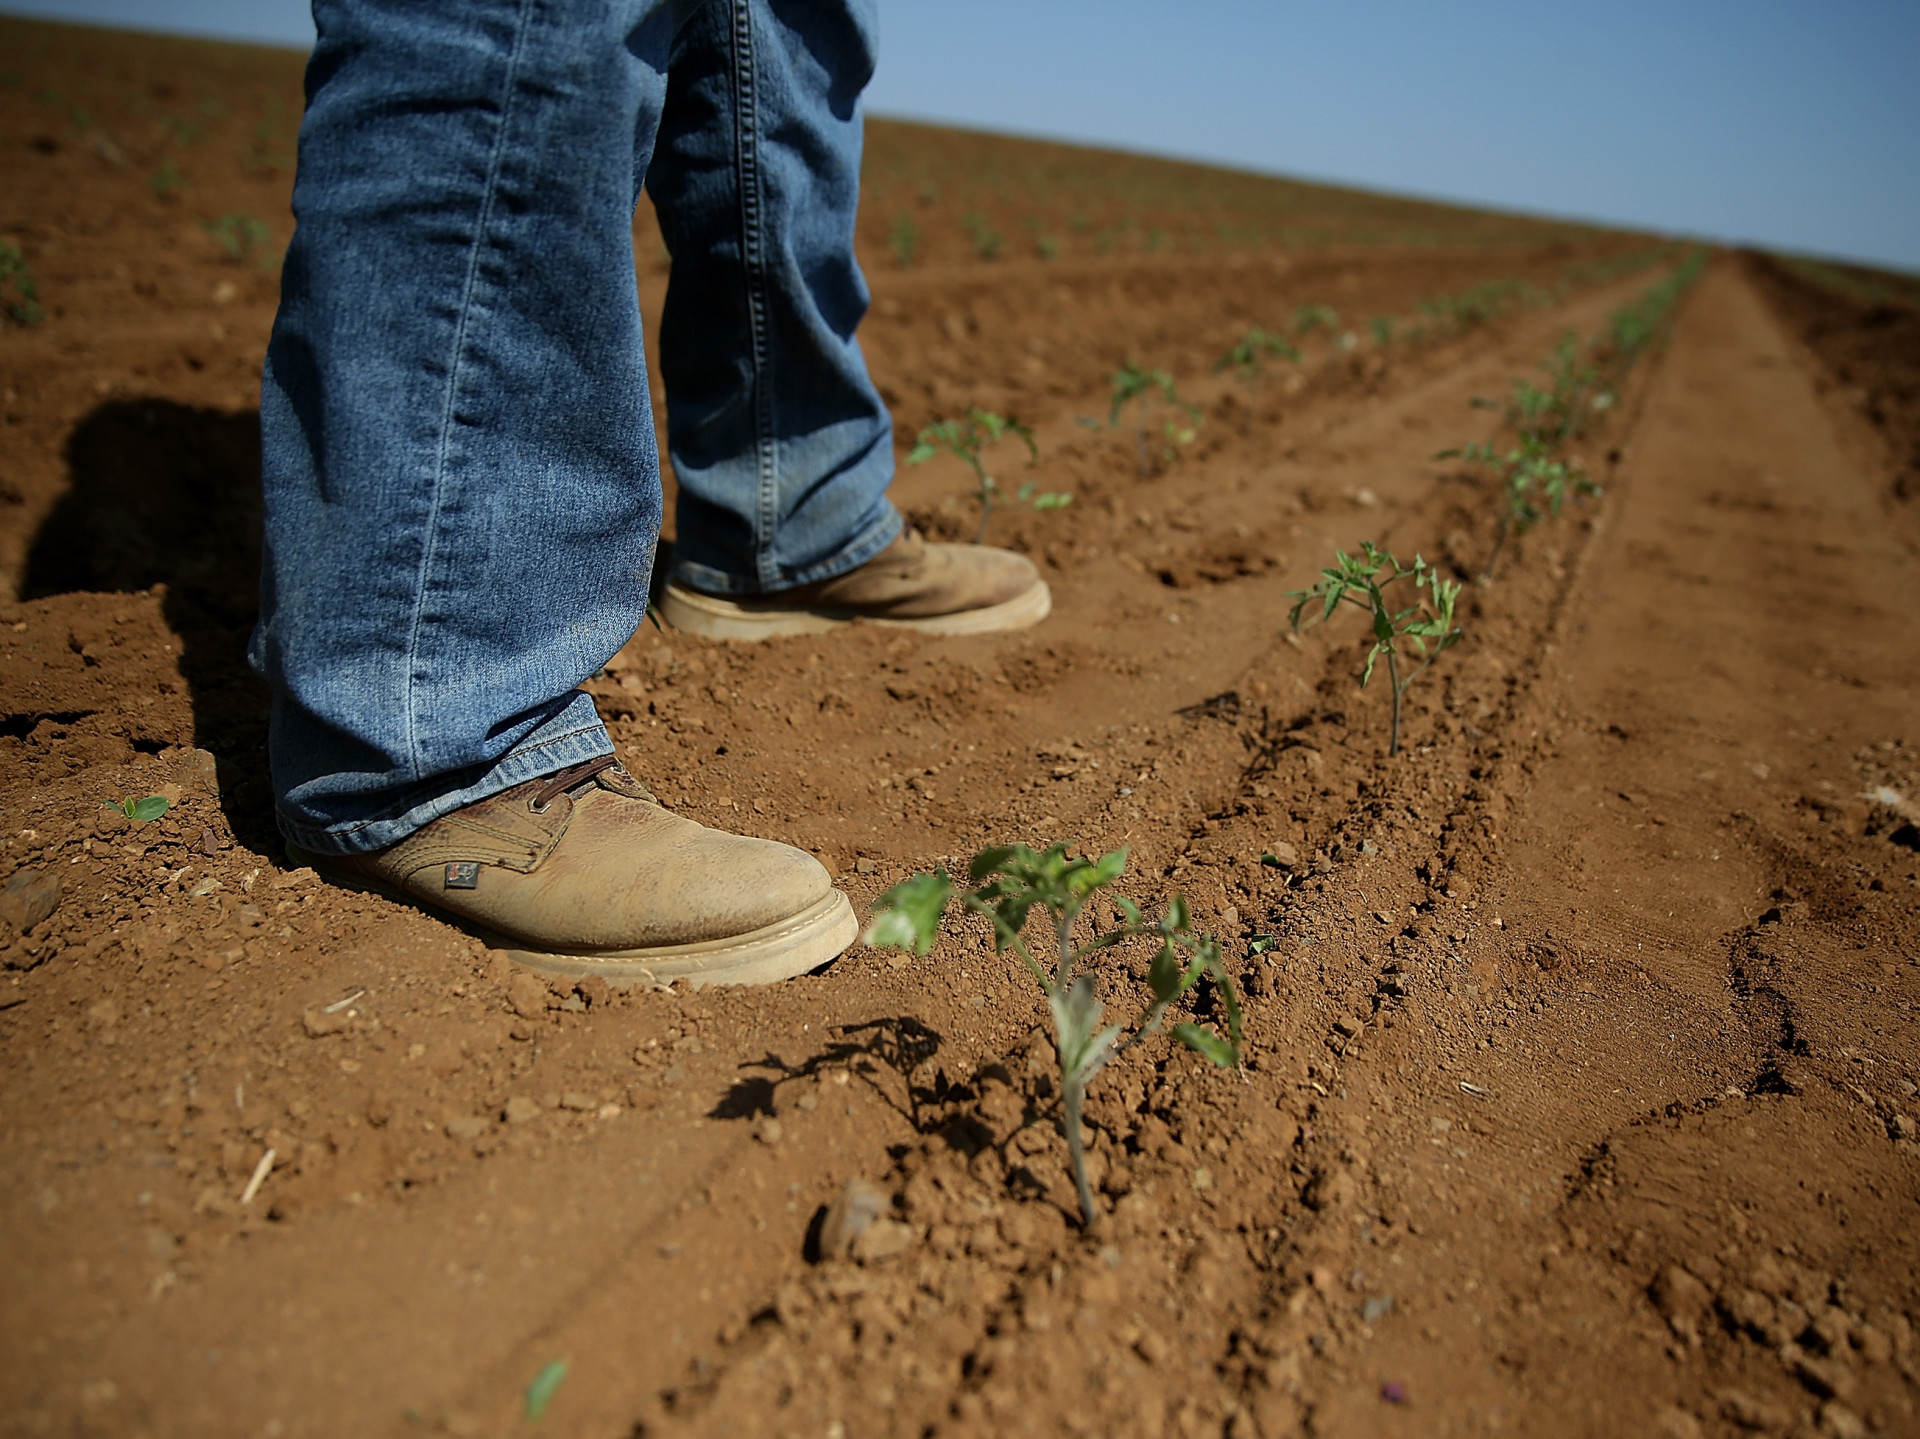 Arow of newly planted organic tomatoes on April 23, 2015 in Firebaugh, Calif. Some farmers are moving tomato production to the north of the state where water supplies are better.